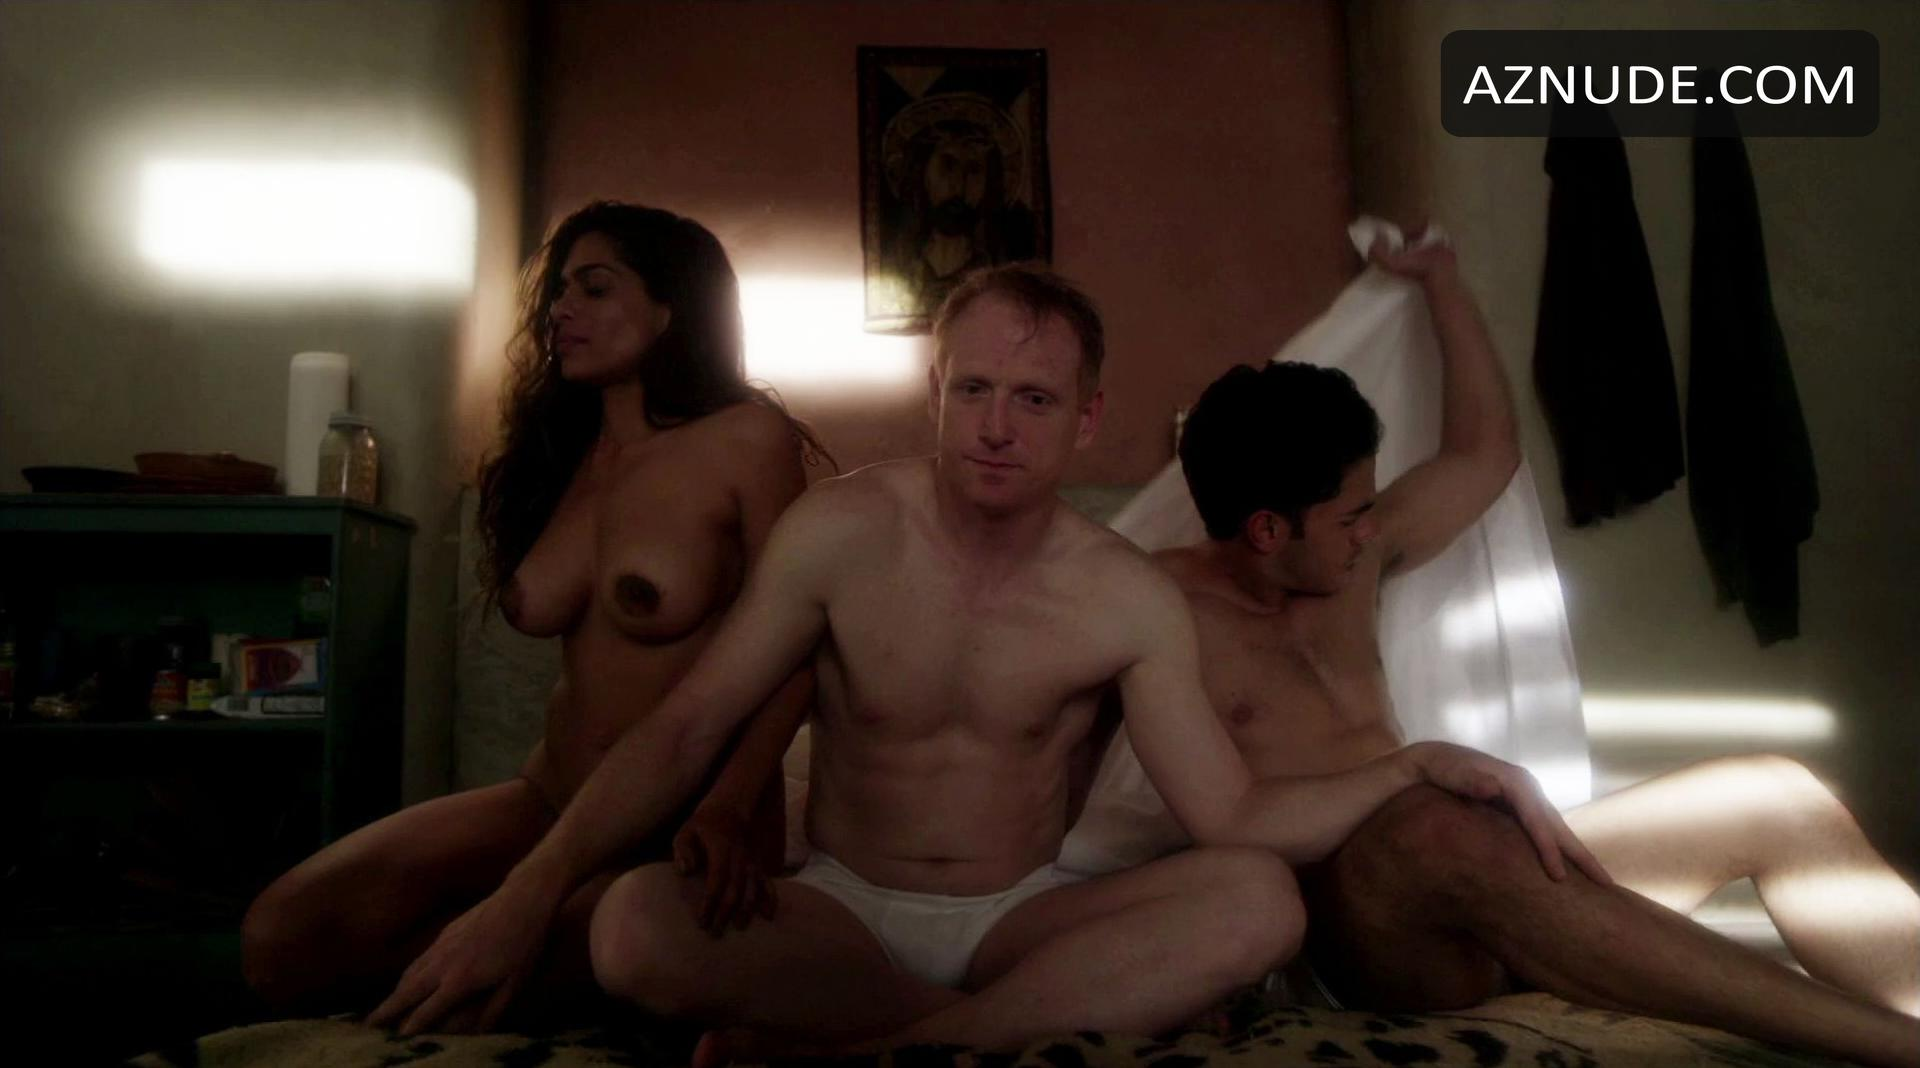 The young pope nude scene